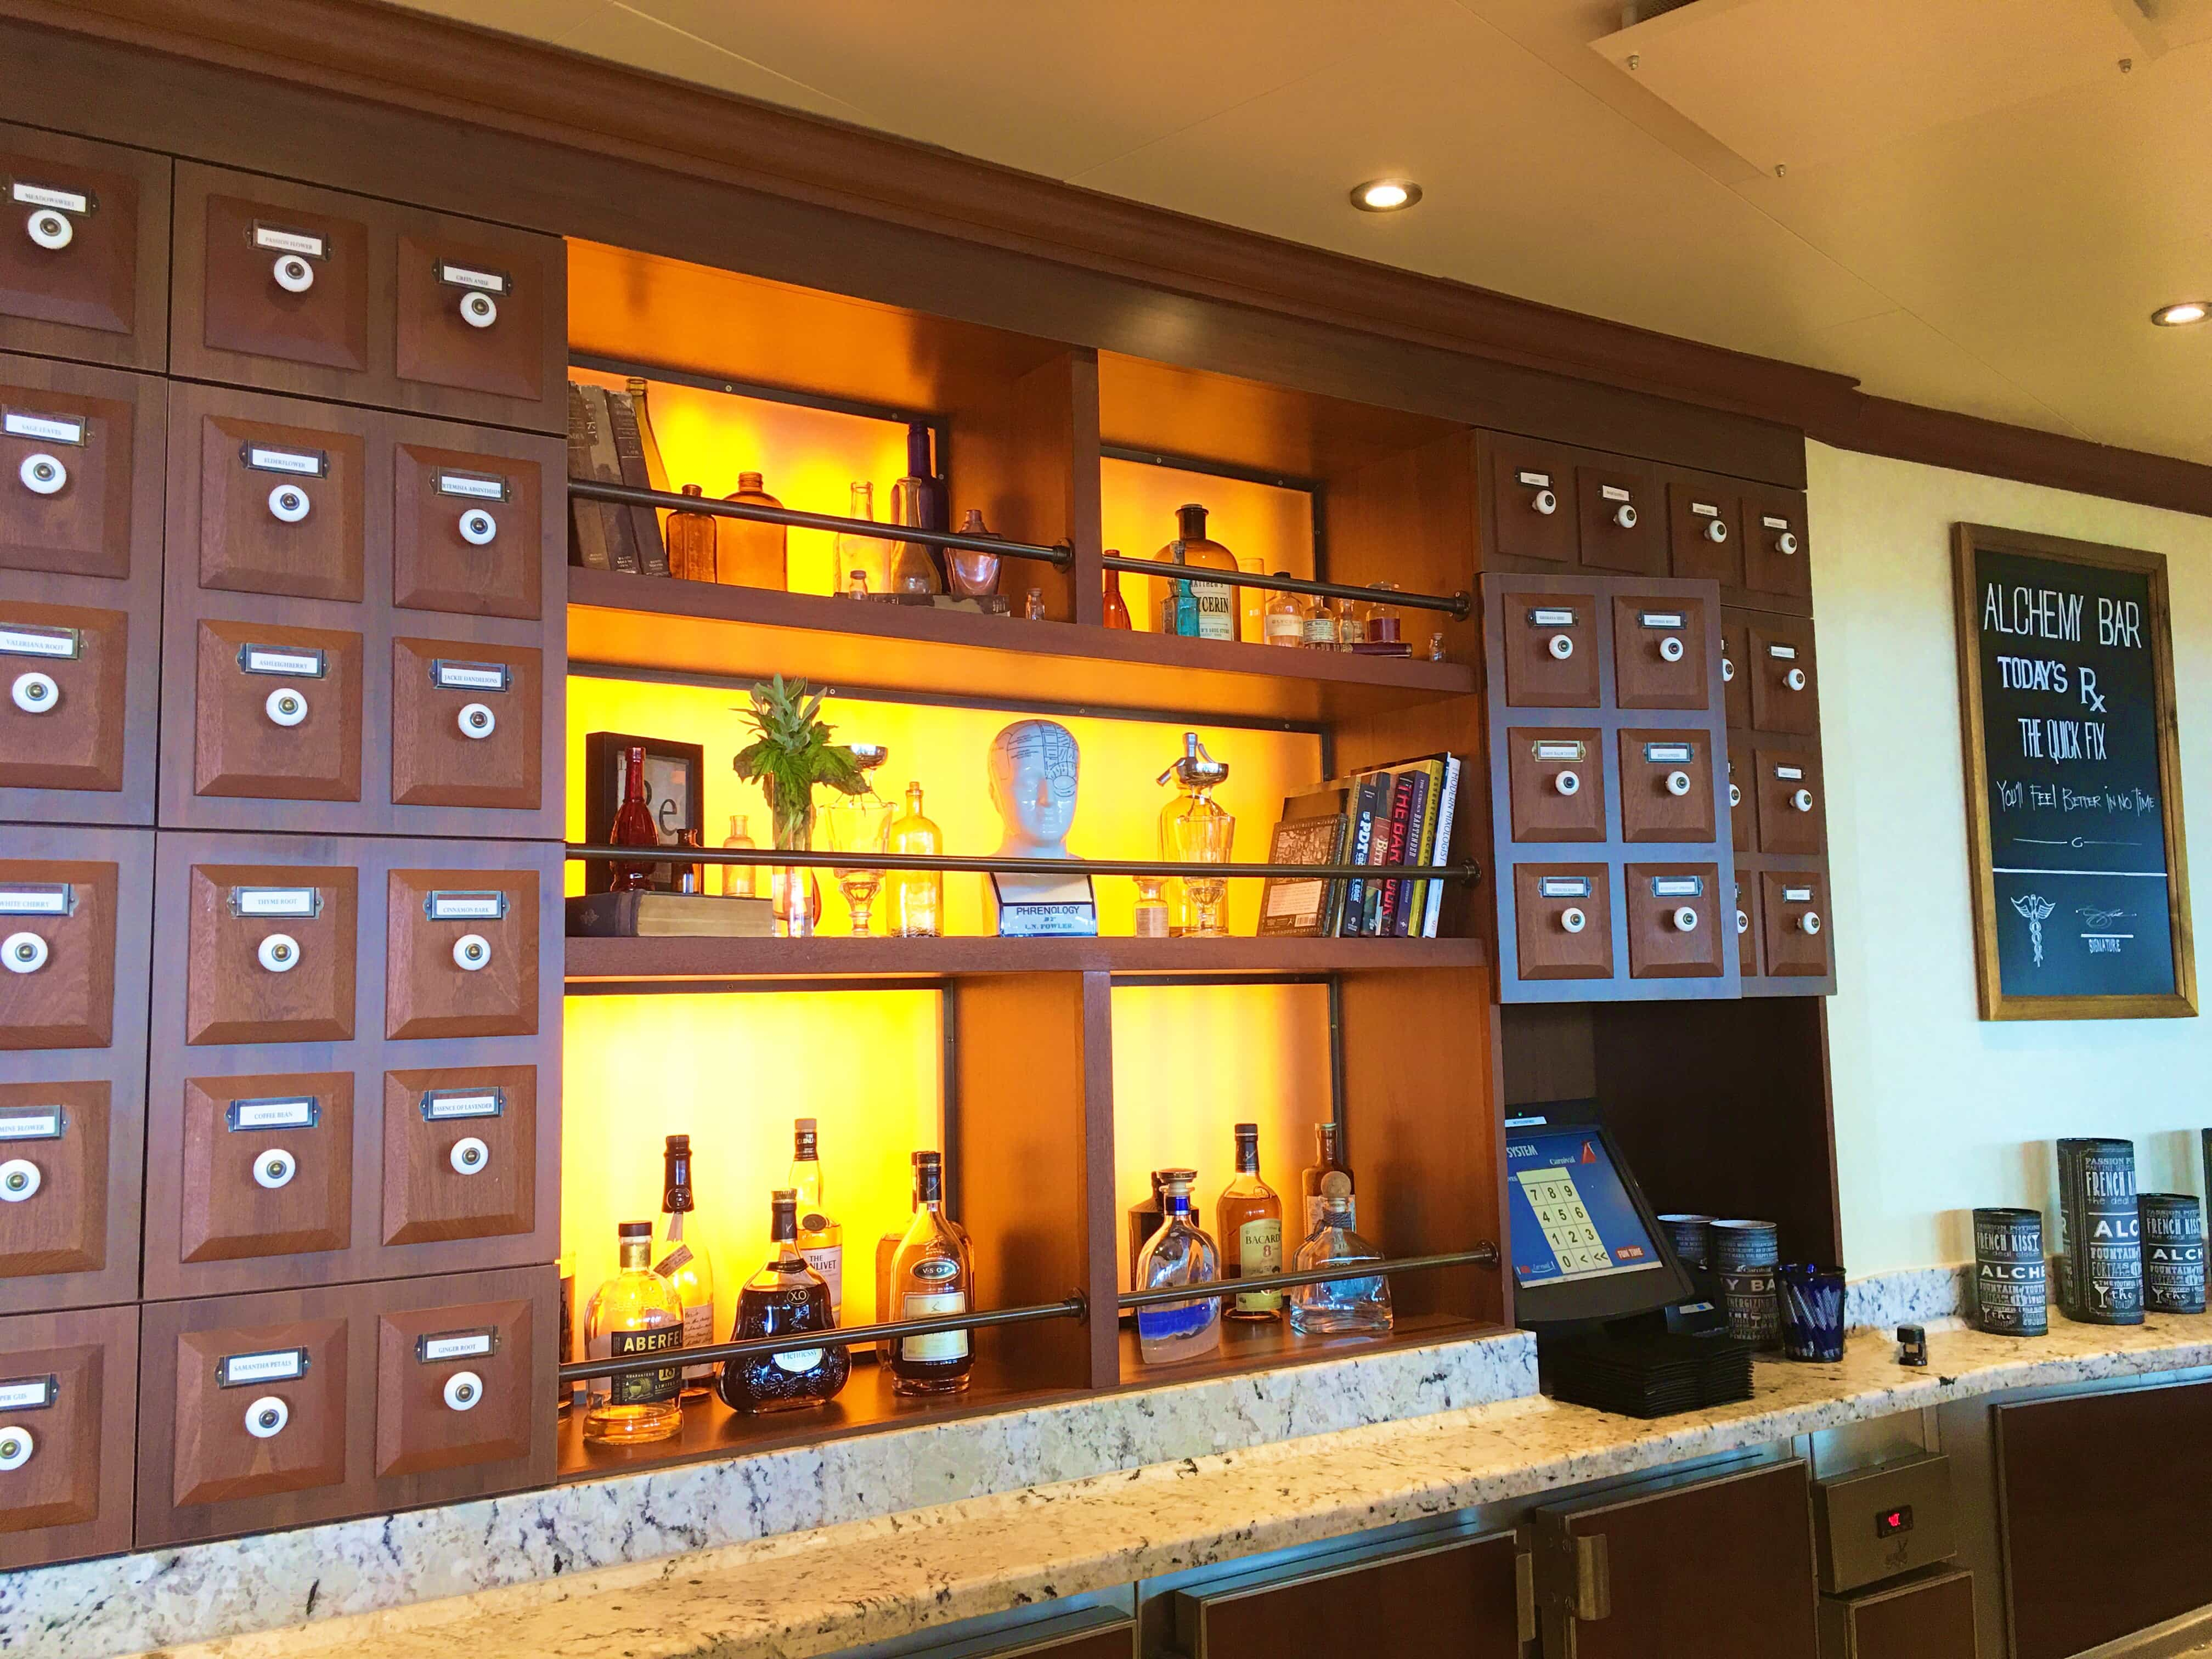 9 Reasons Cruising the Carnival Magic Good for Adults - Carnival Magic Alchemy